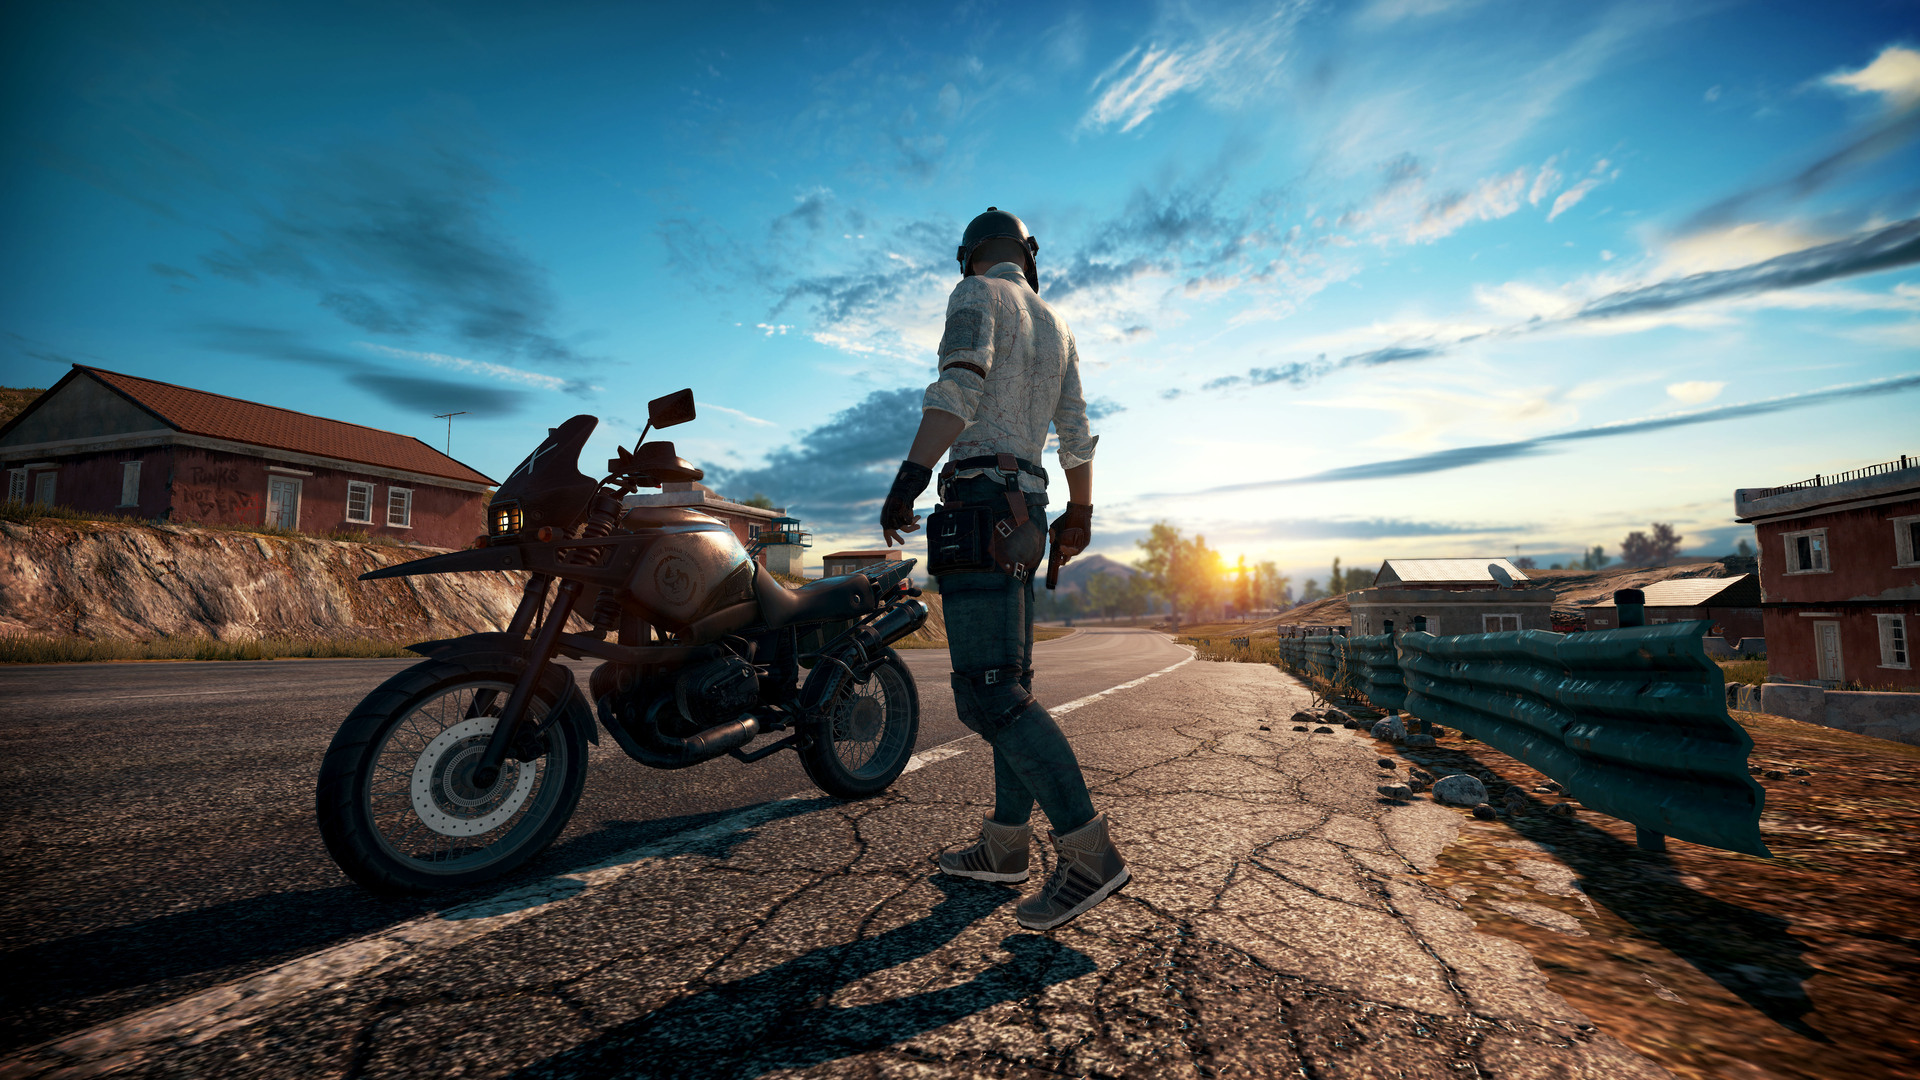 Gambar Pubg Hd Wallpaper